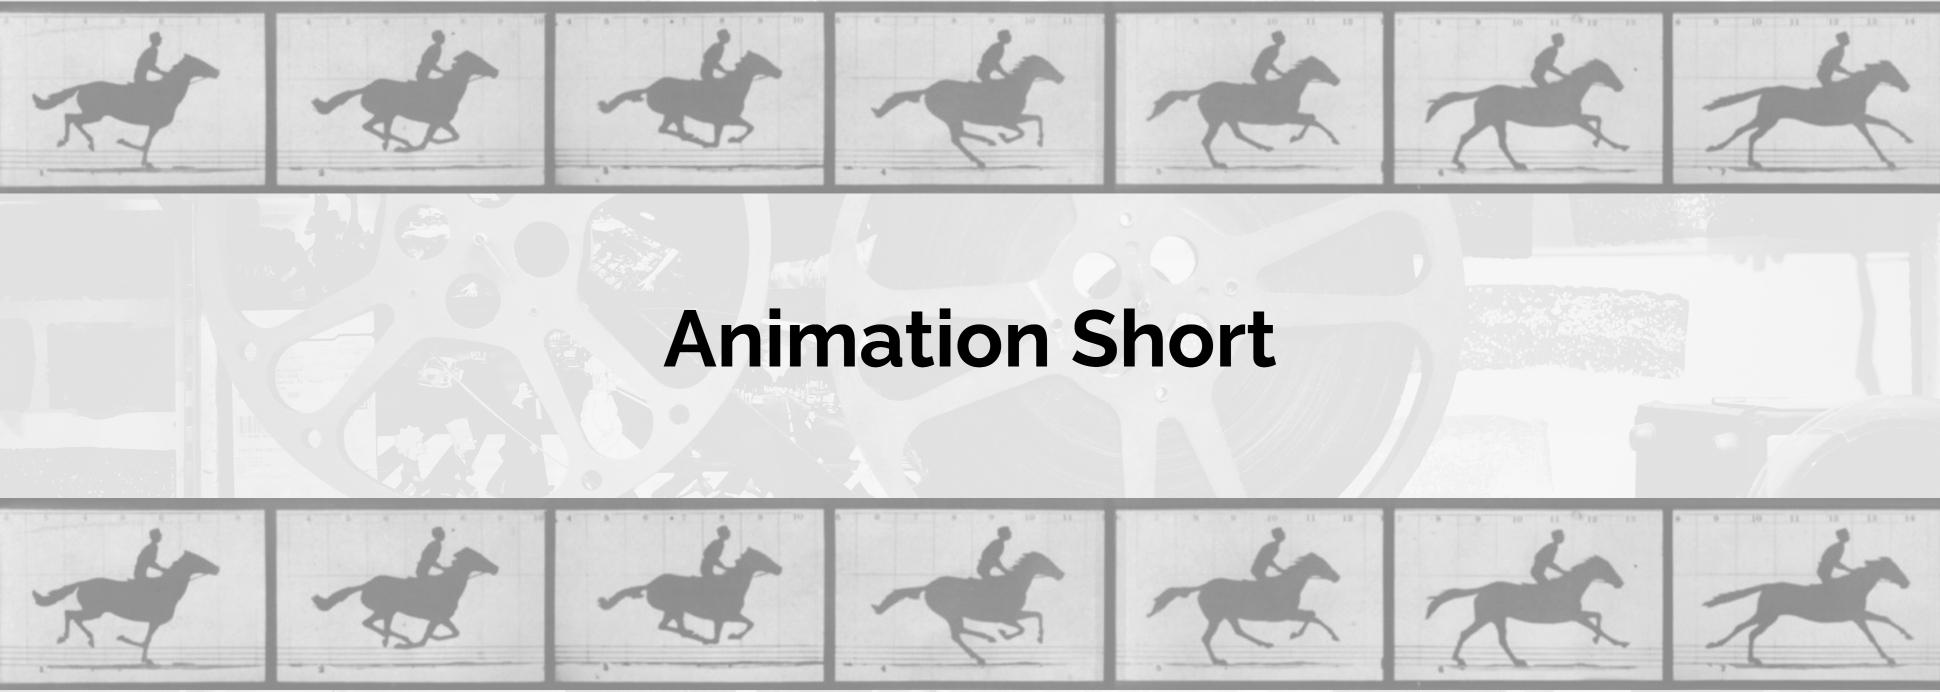 Animation Short